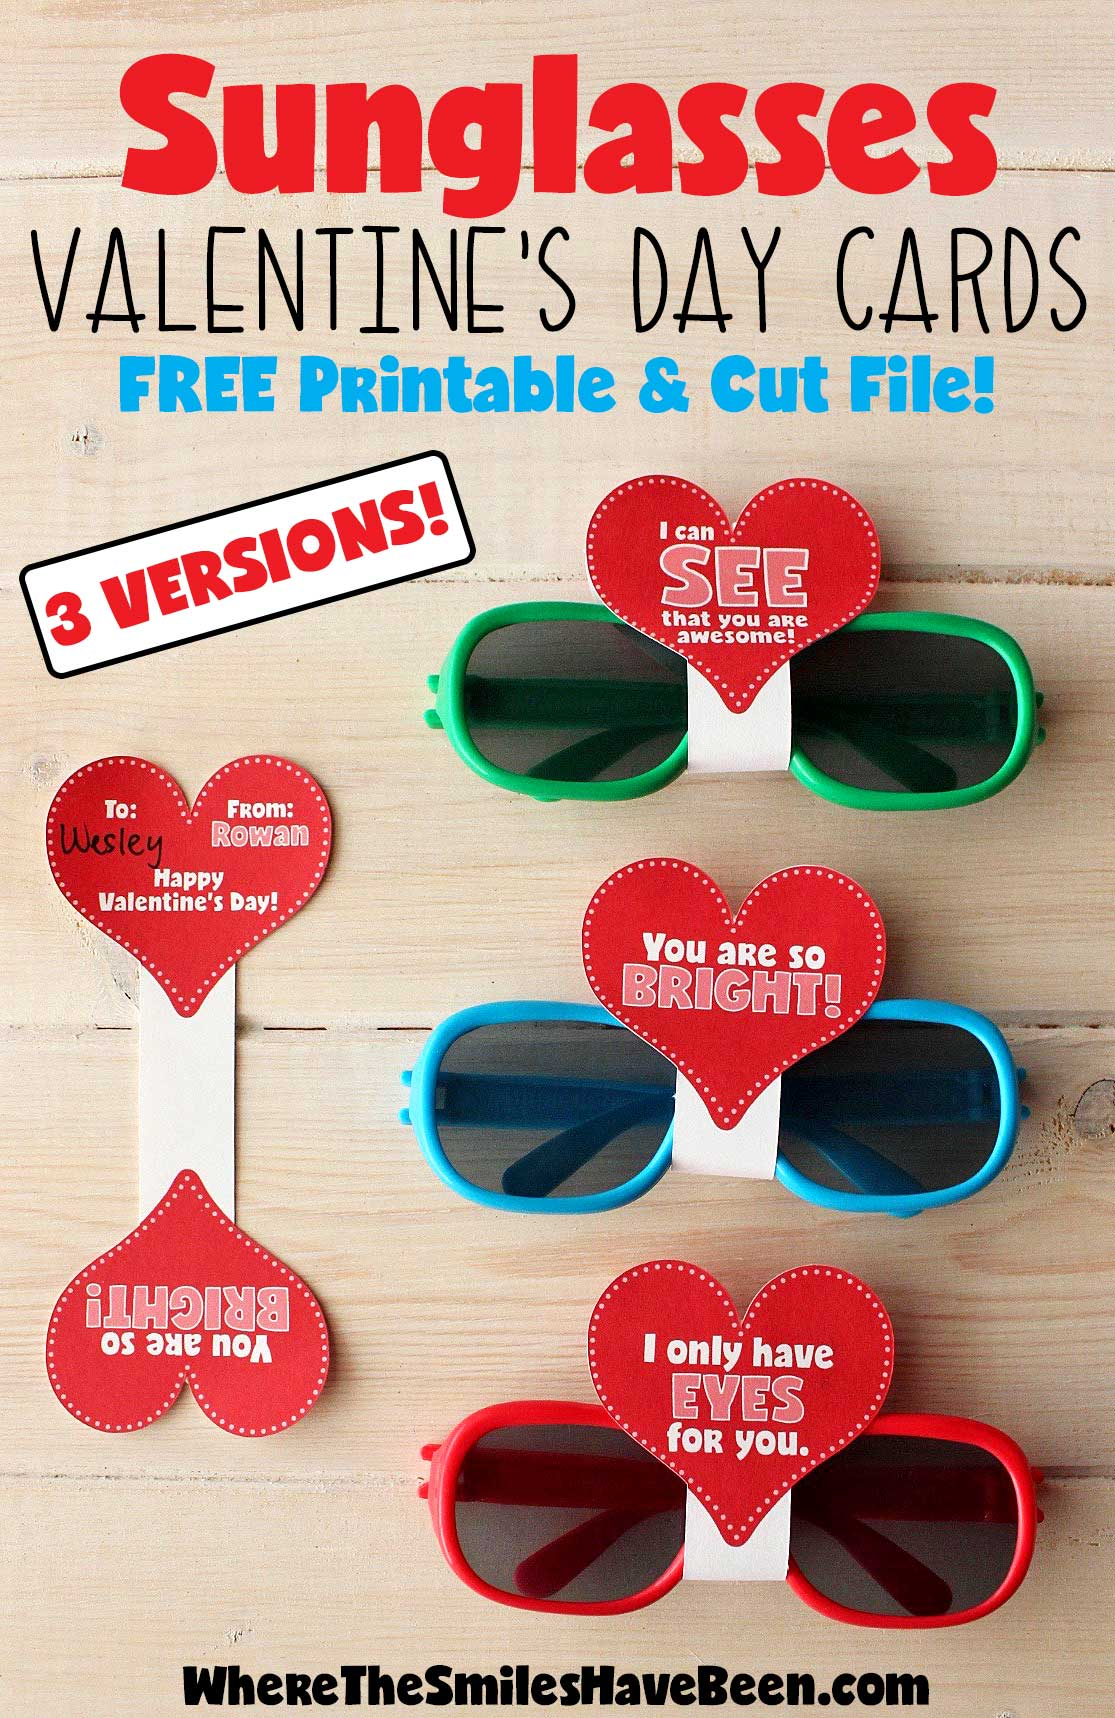 Valentines Gifts 2017: Sunglasses